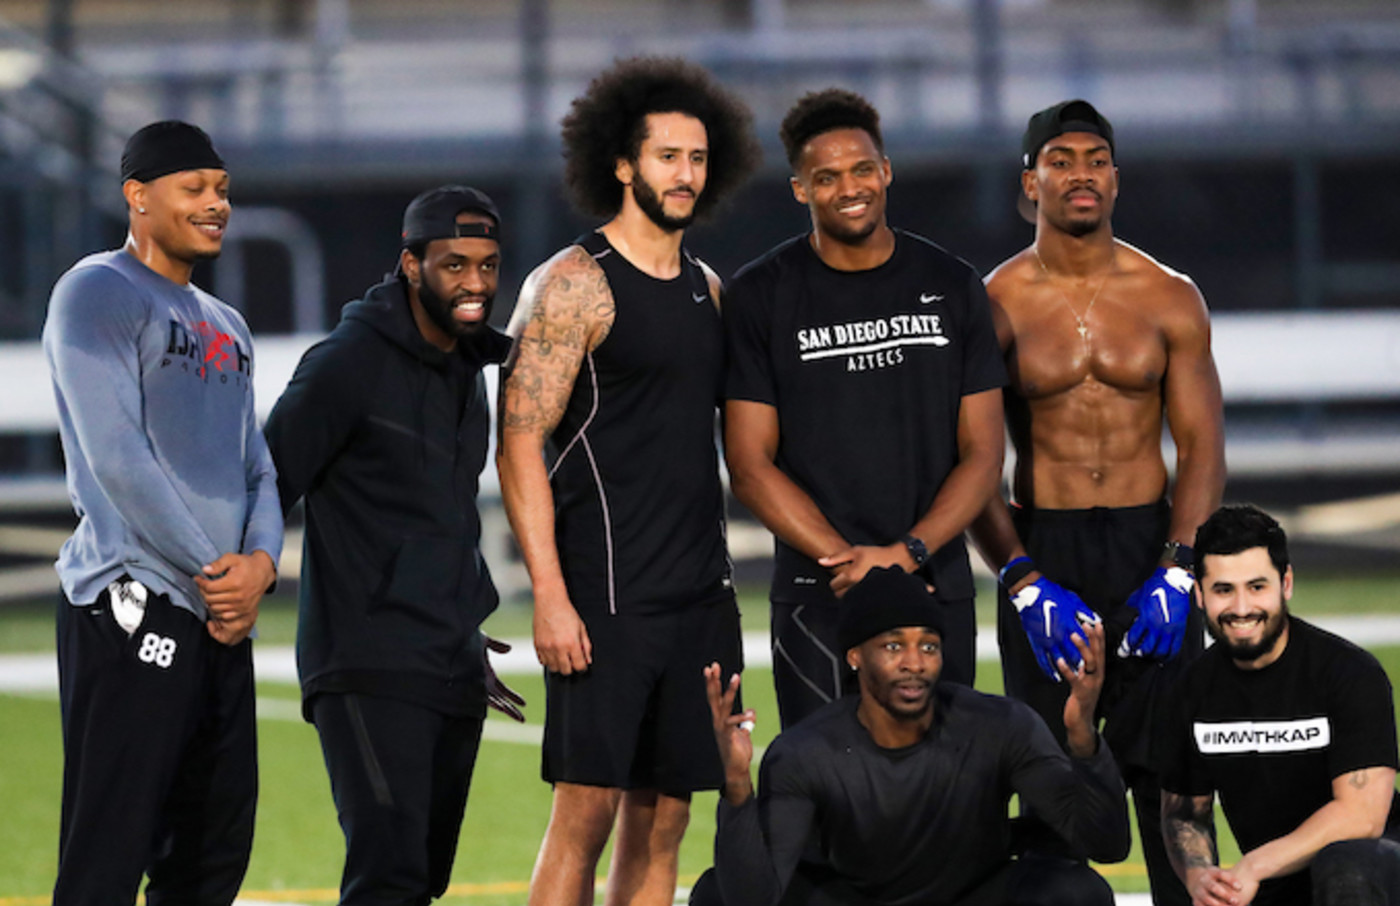 Colin Kaepernick stands with Jordan Veasy, among others. during NFL workout